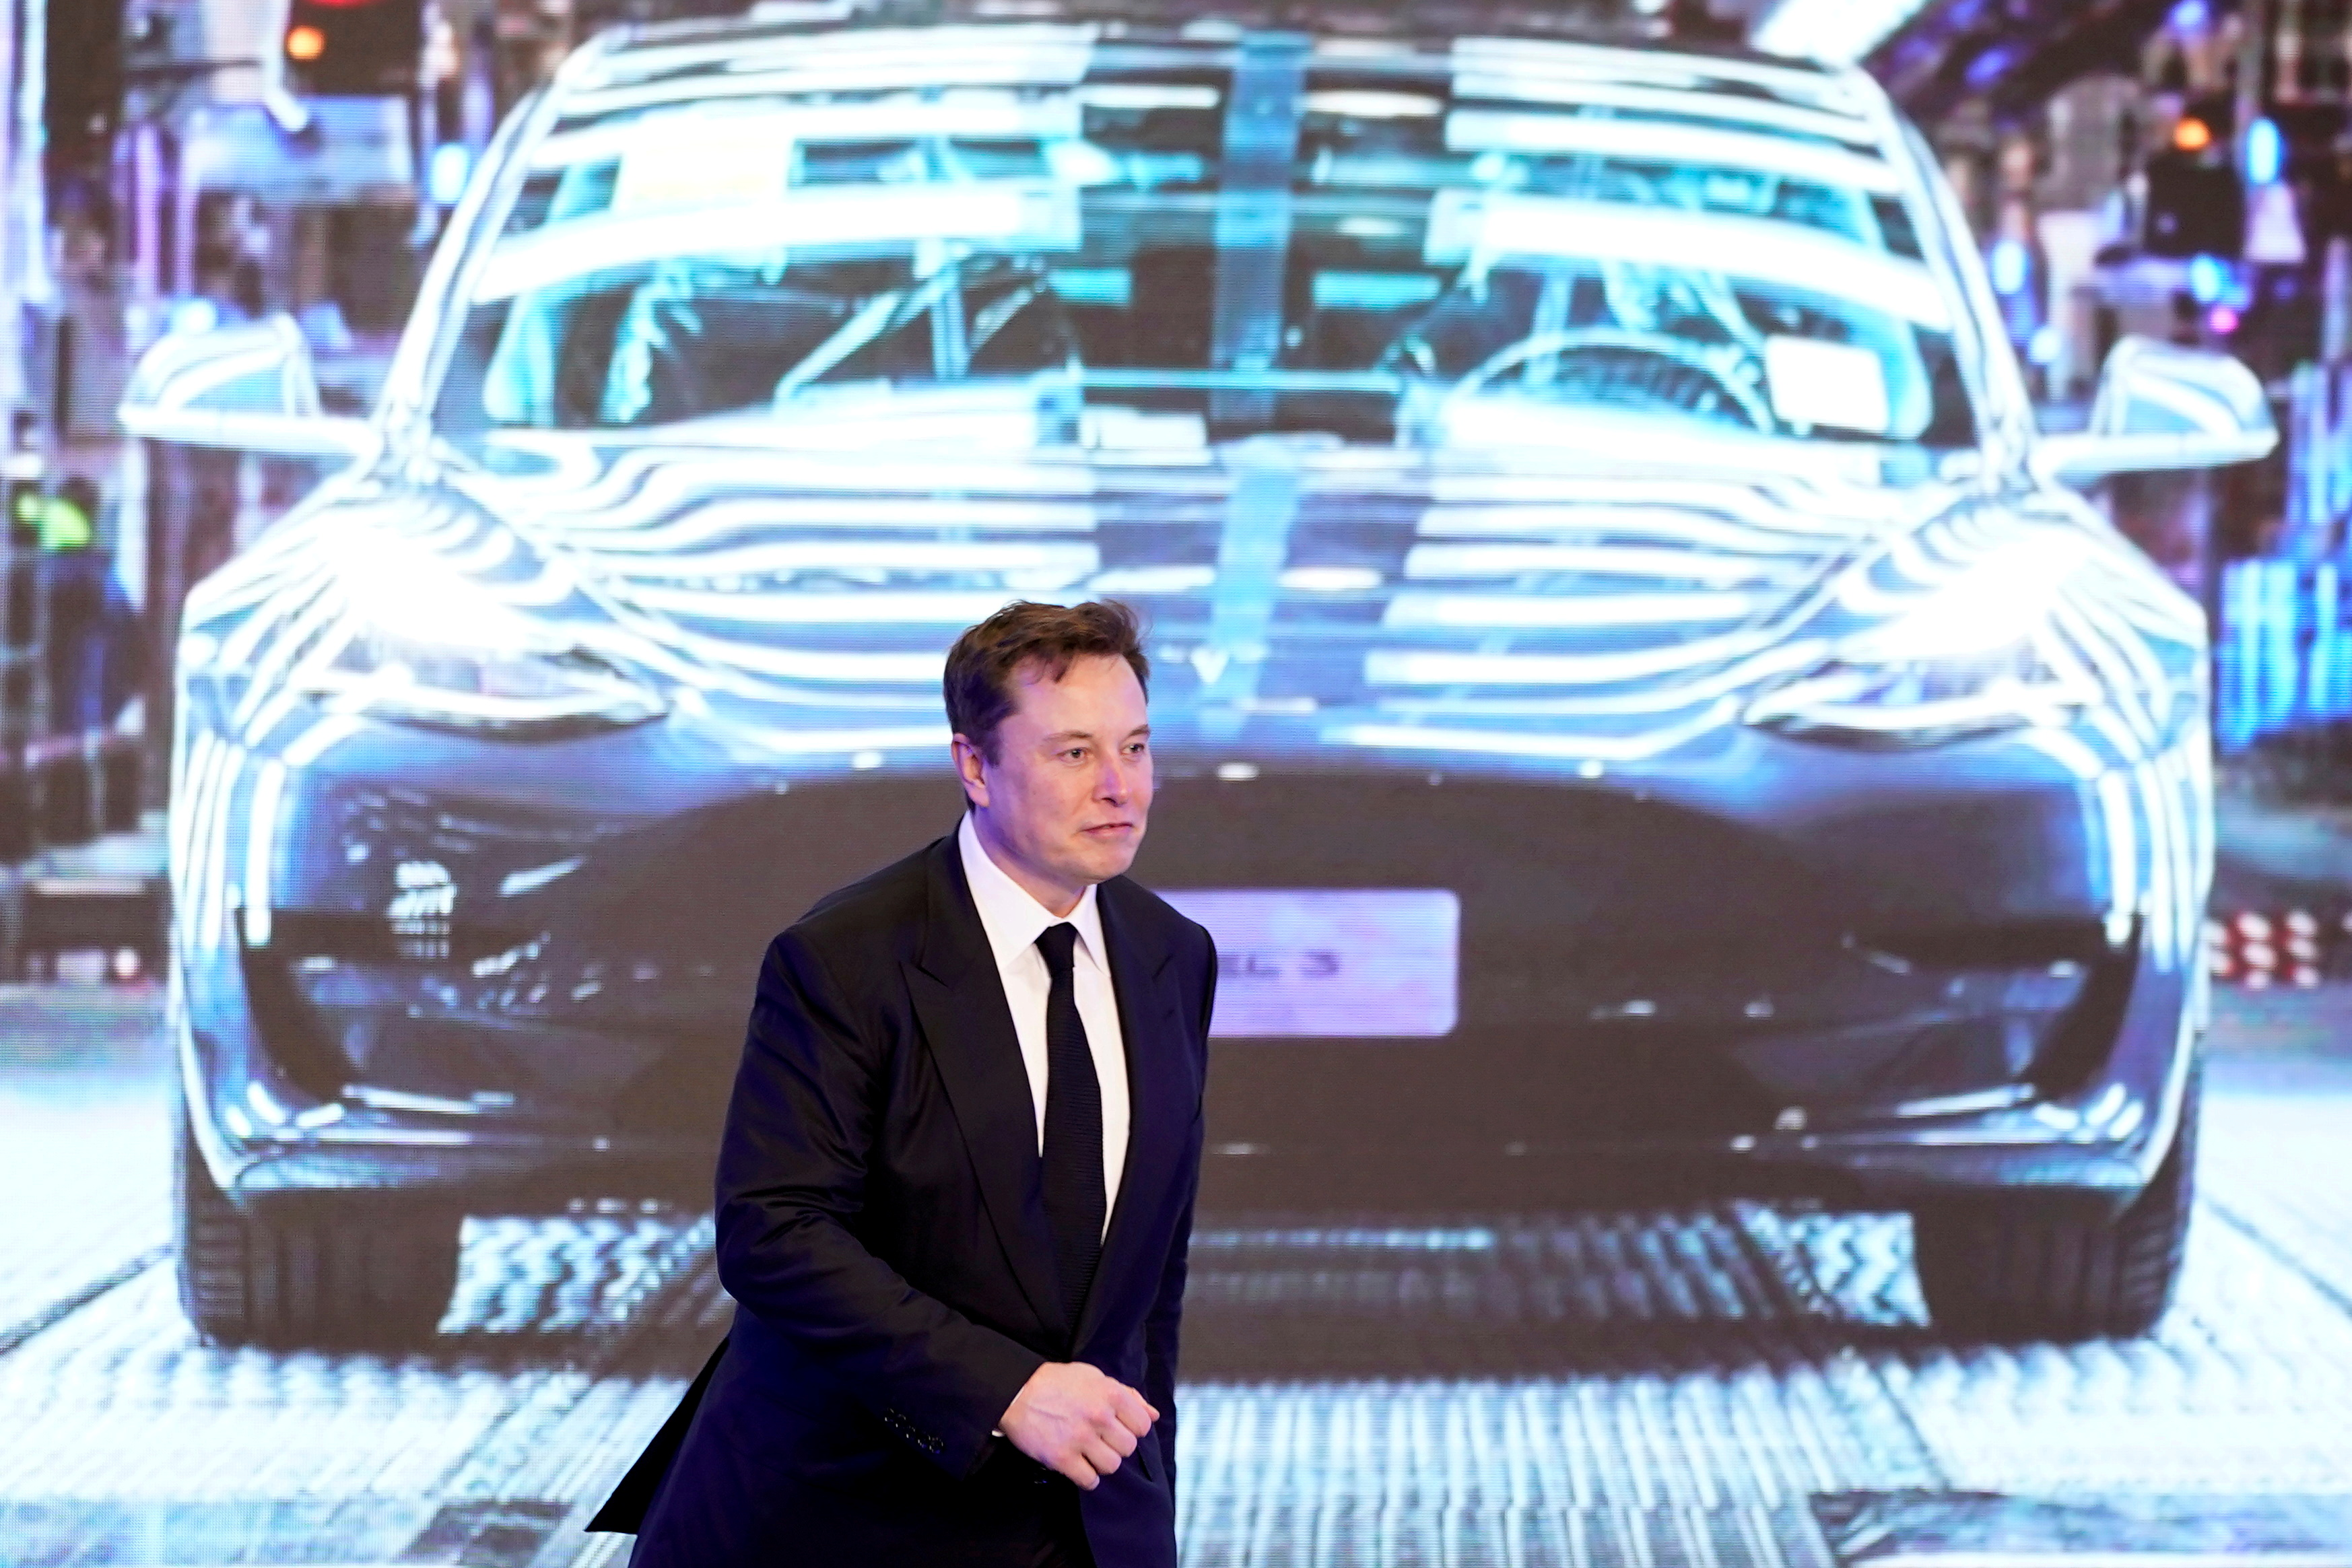 Tesla Inc CEO Elon Musk walks next to a screen showing an image of Tesla Model 3 car during an opening ceremony for Tesla China-made Model Y program in Shanghai, China January 7, 2020. REUTERS/Aly Song/File Photo